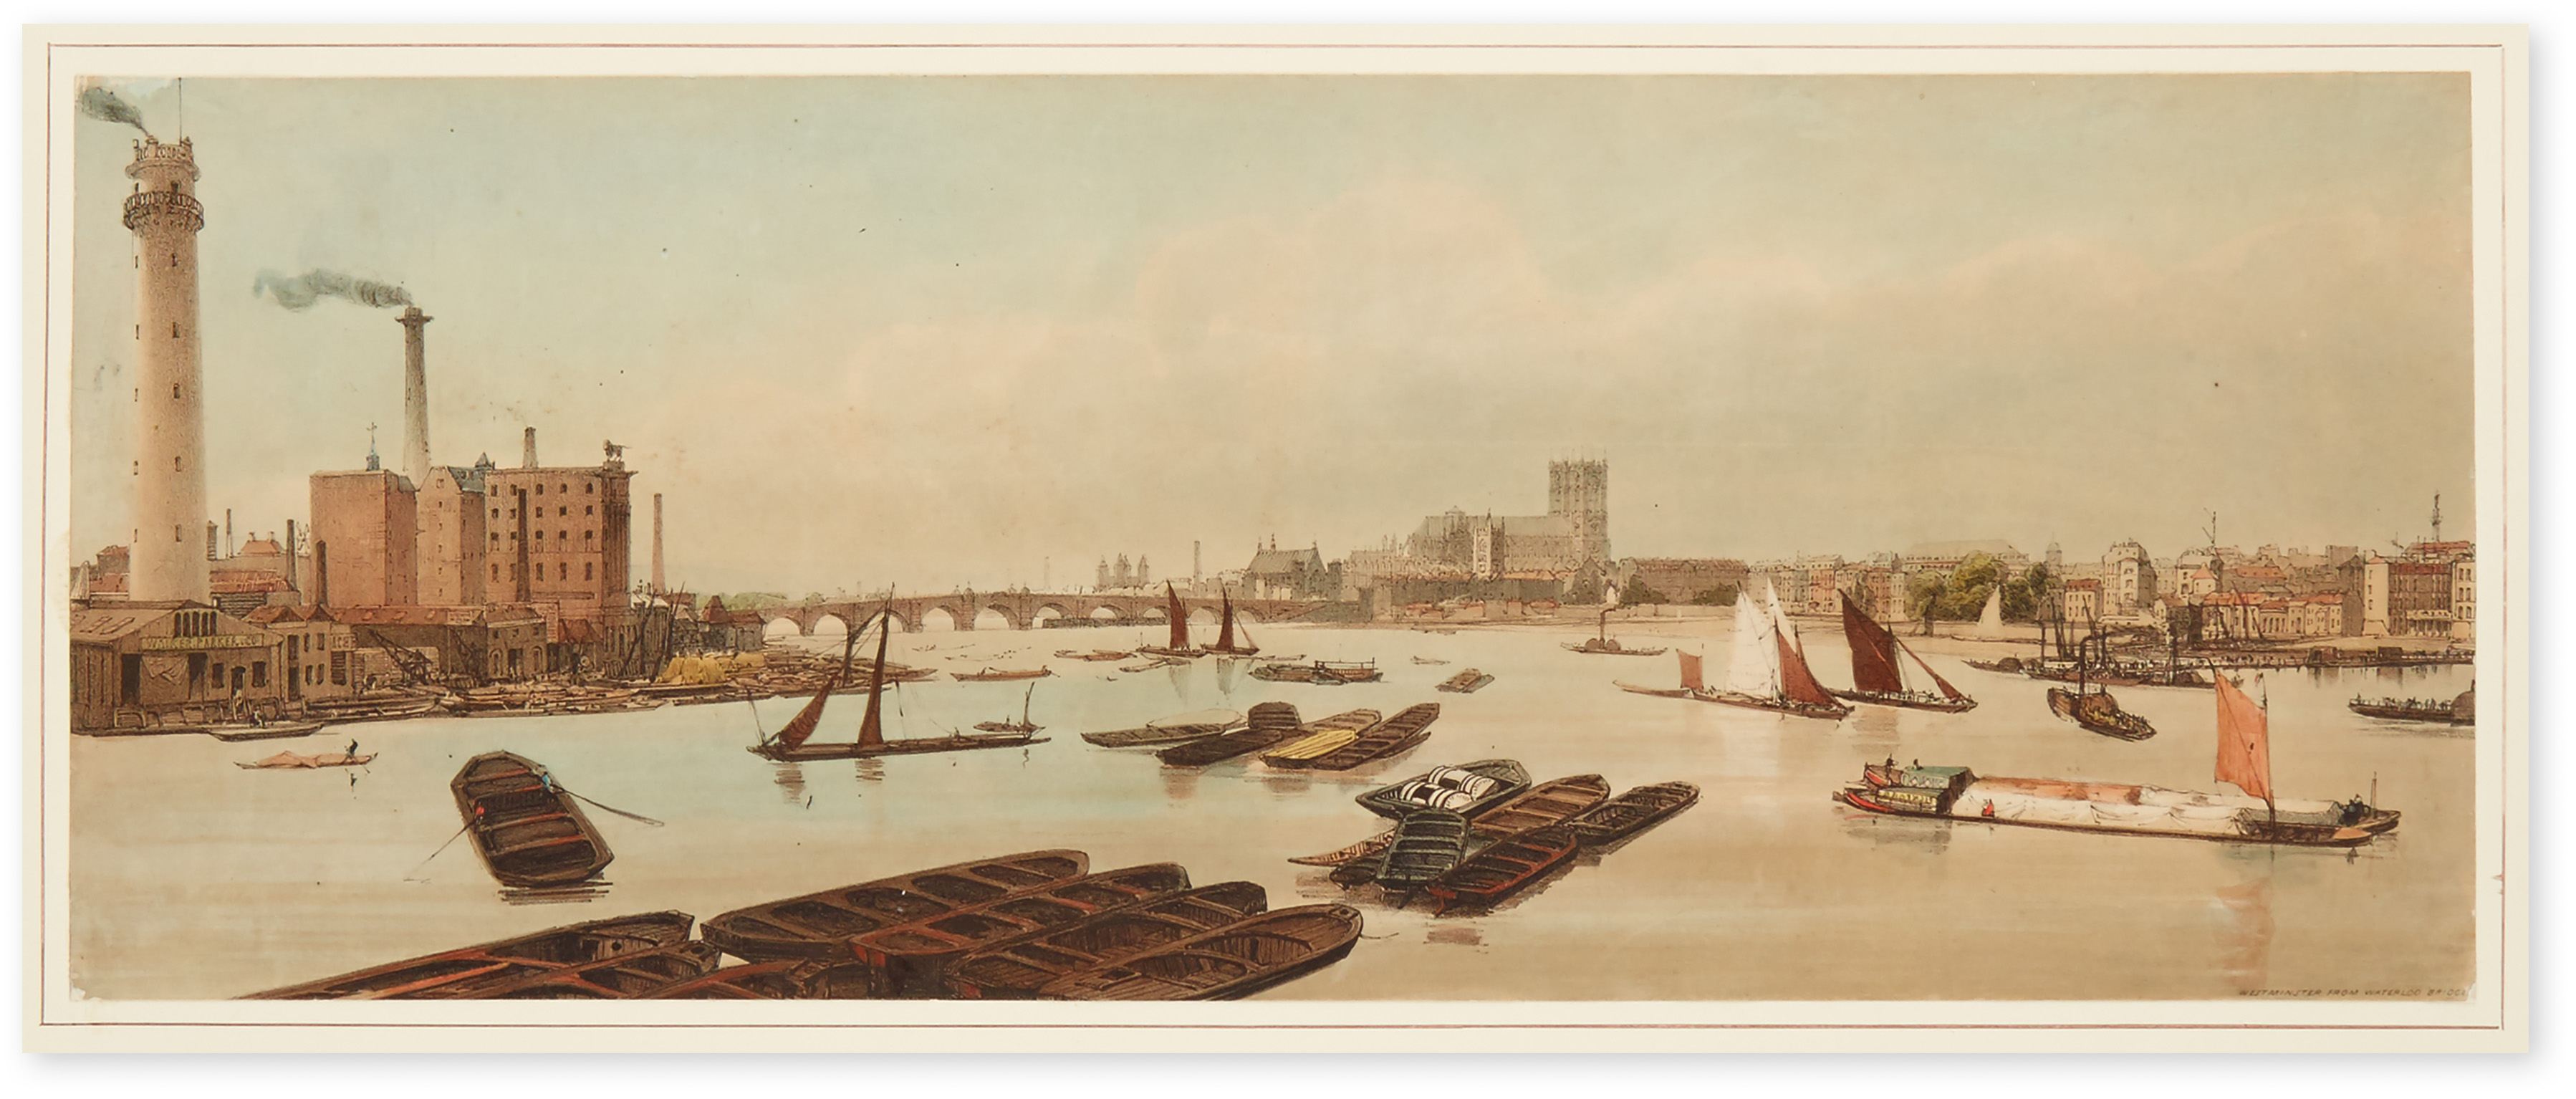 Thomas Shotter Boys' Original View of London As It Is